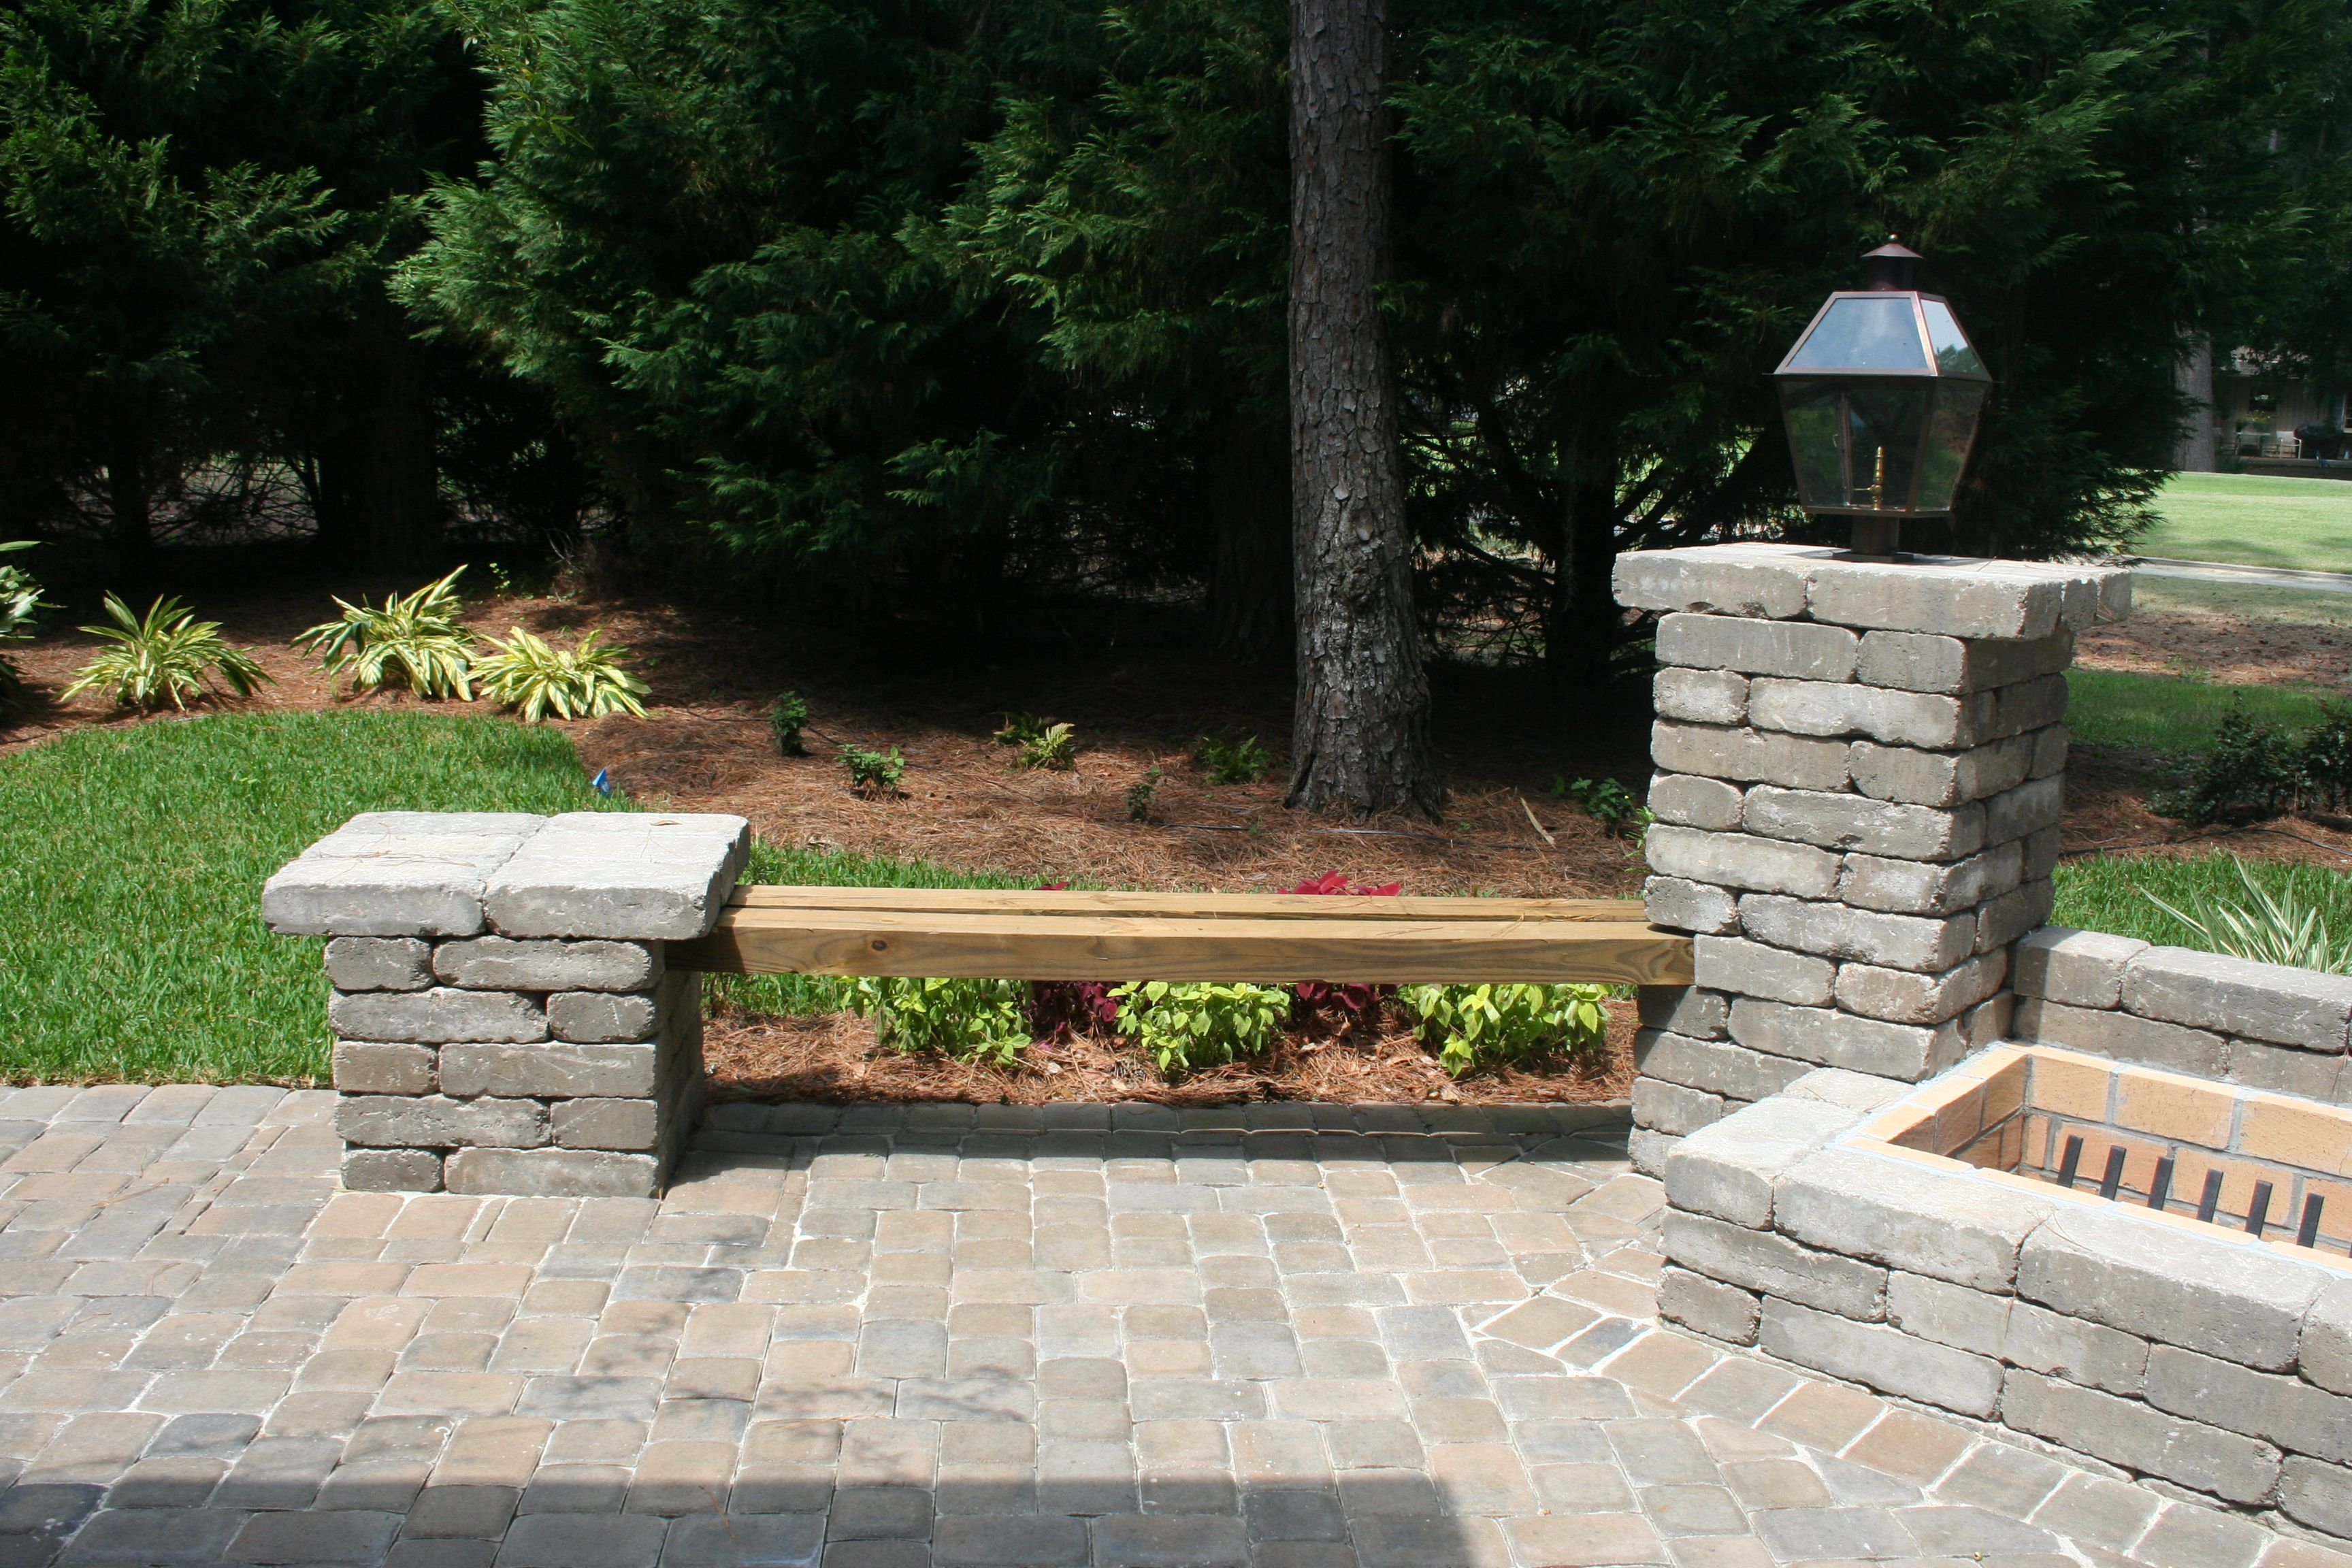 Pleasing Paver Columns With Wood Benches In 2019 Fire Pit Patio Pabps2019 Chair Design Images Pabps2019Com